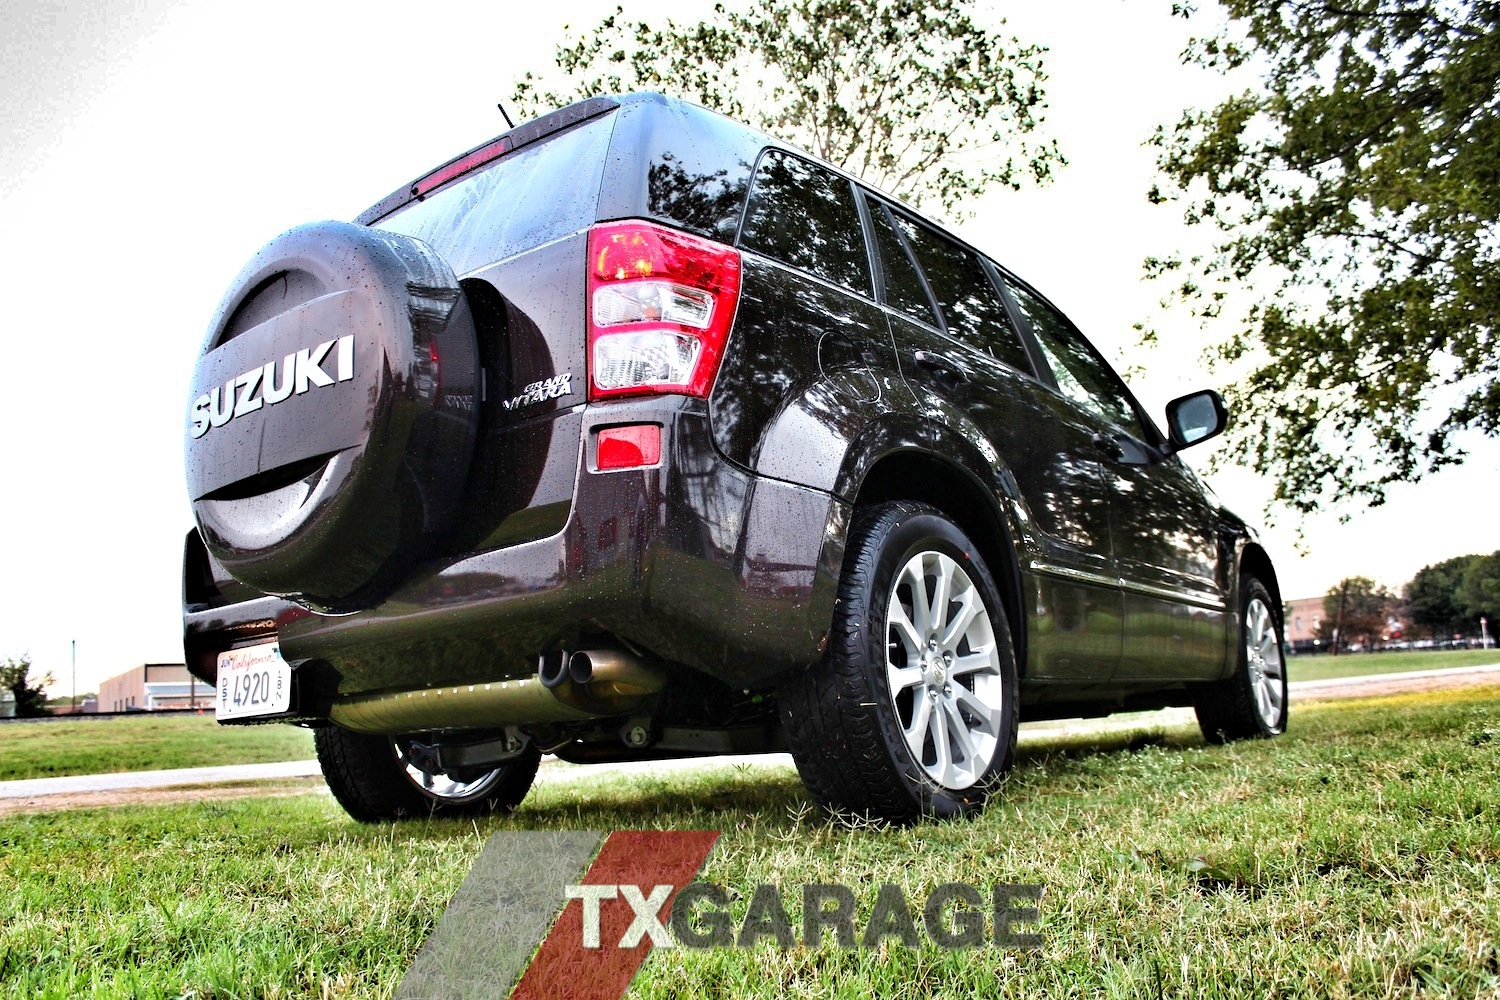 2013 Suzuki Grand Vitara 005 Txgarage